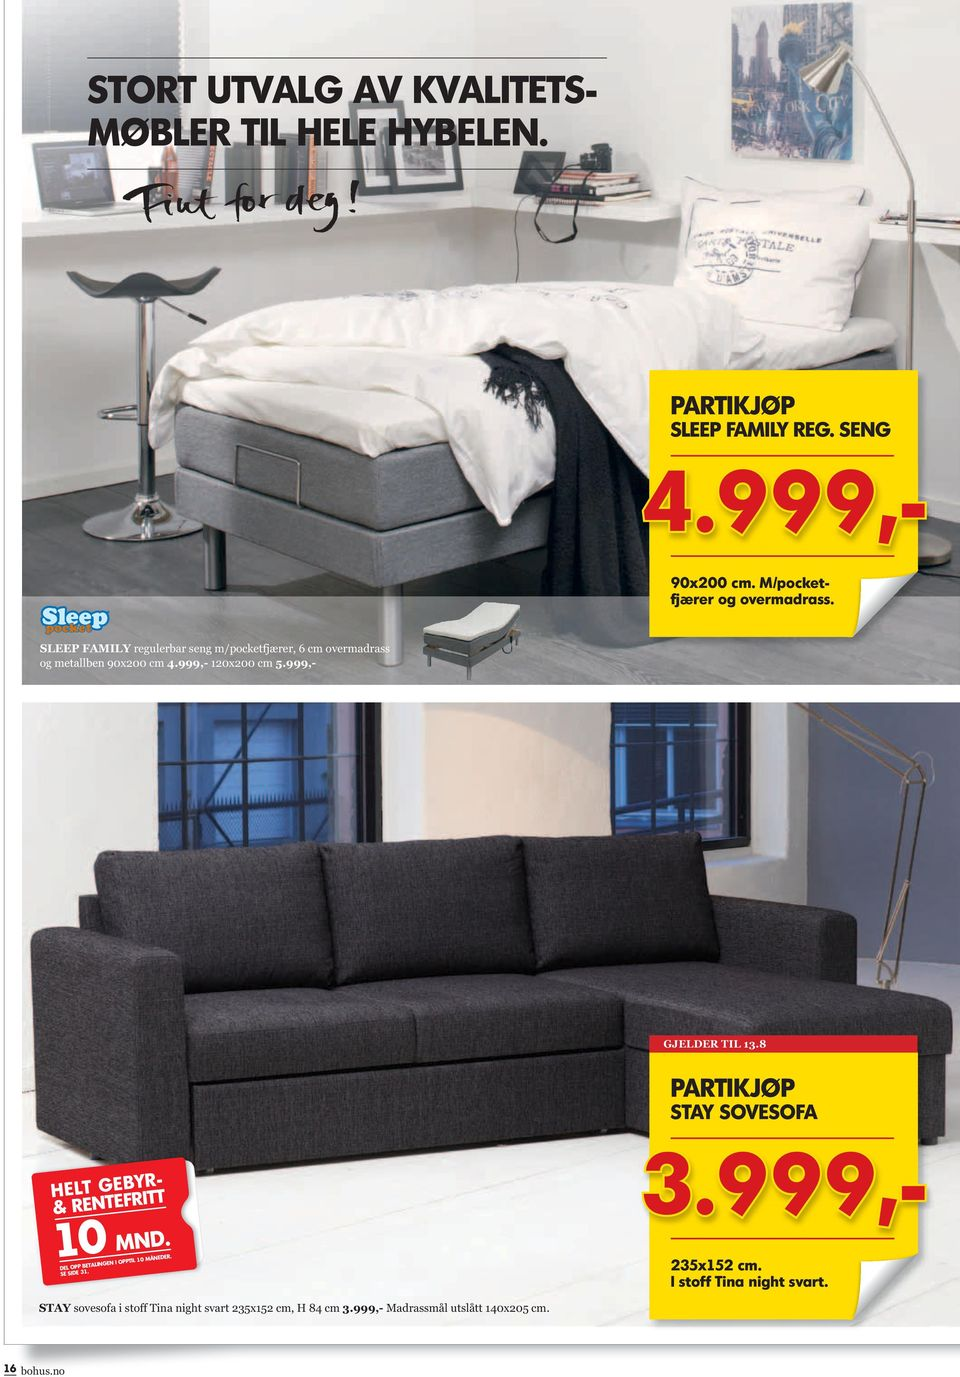 8 partikjøp stay sovesofa 10 MND. SE SIDE 31. 4.999,- 3.999,- 235x152 cm. i stoff tina night svart.